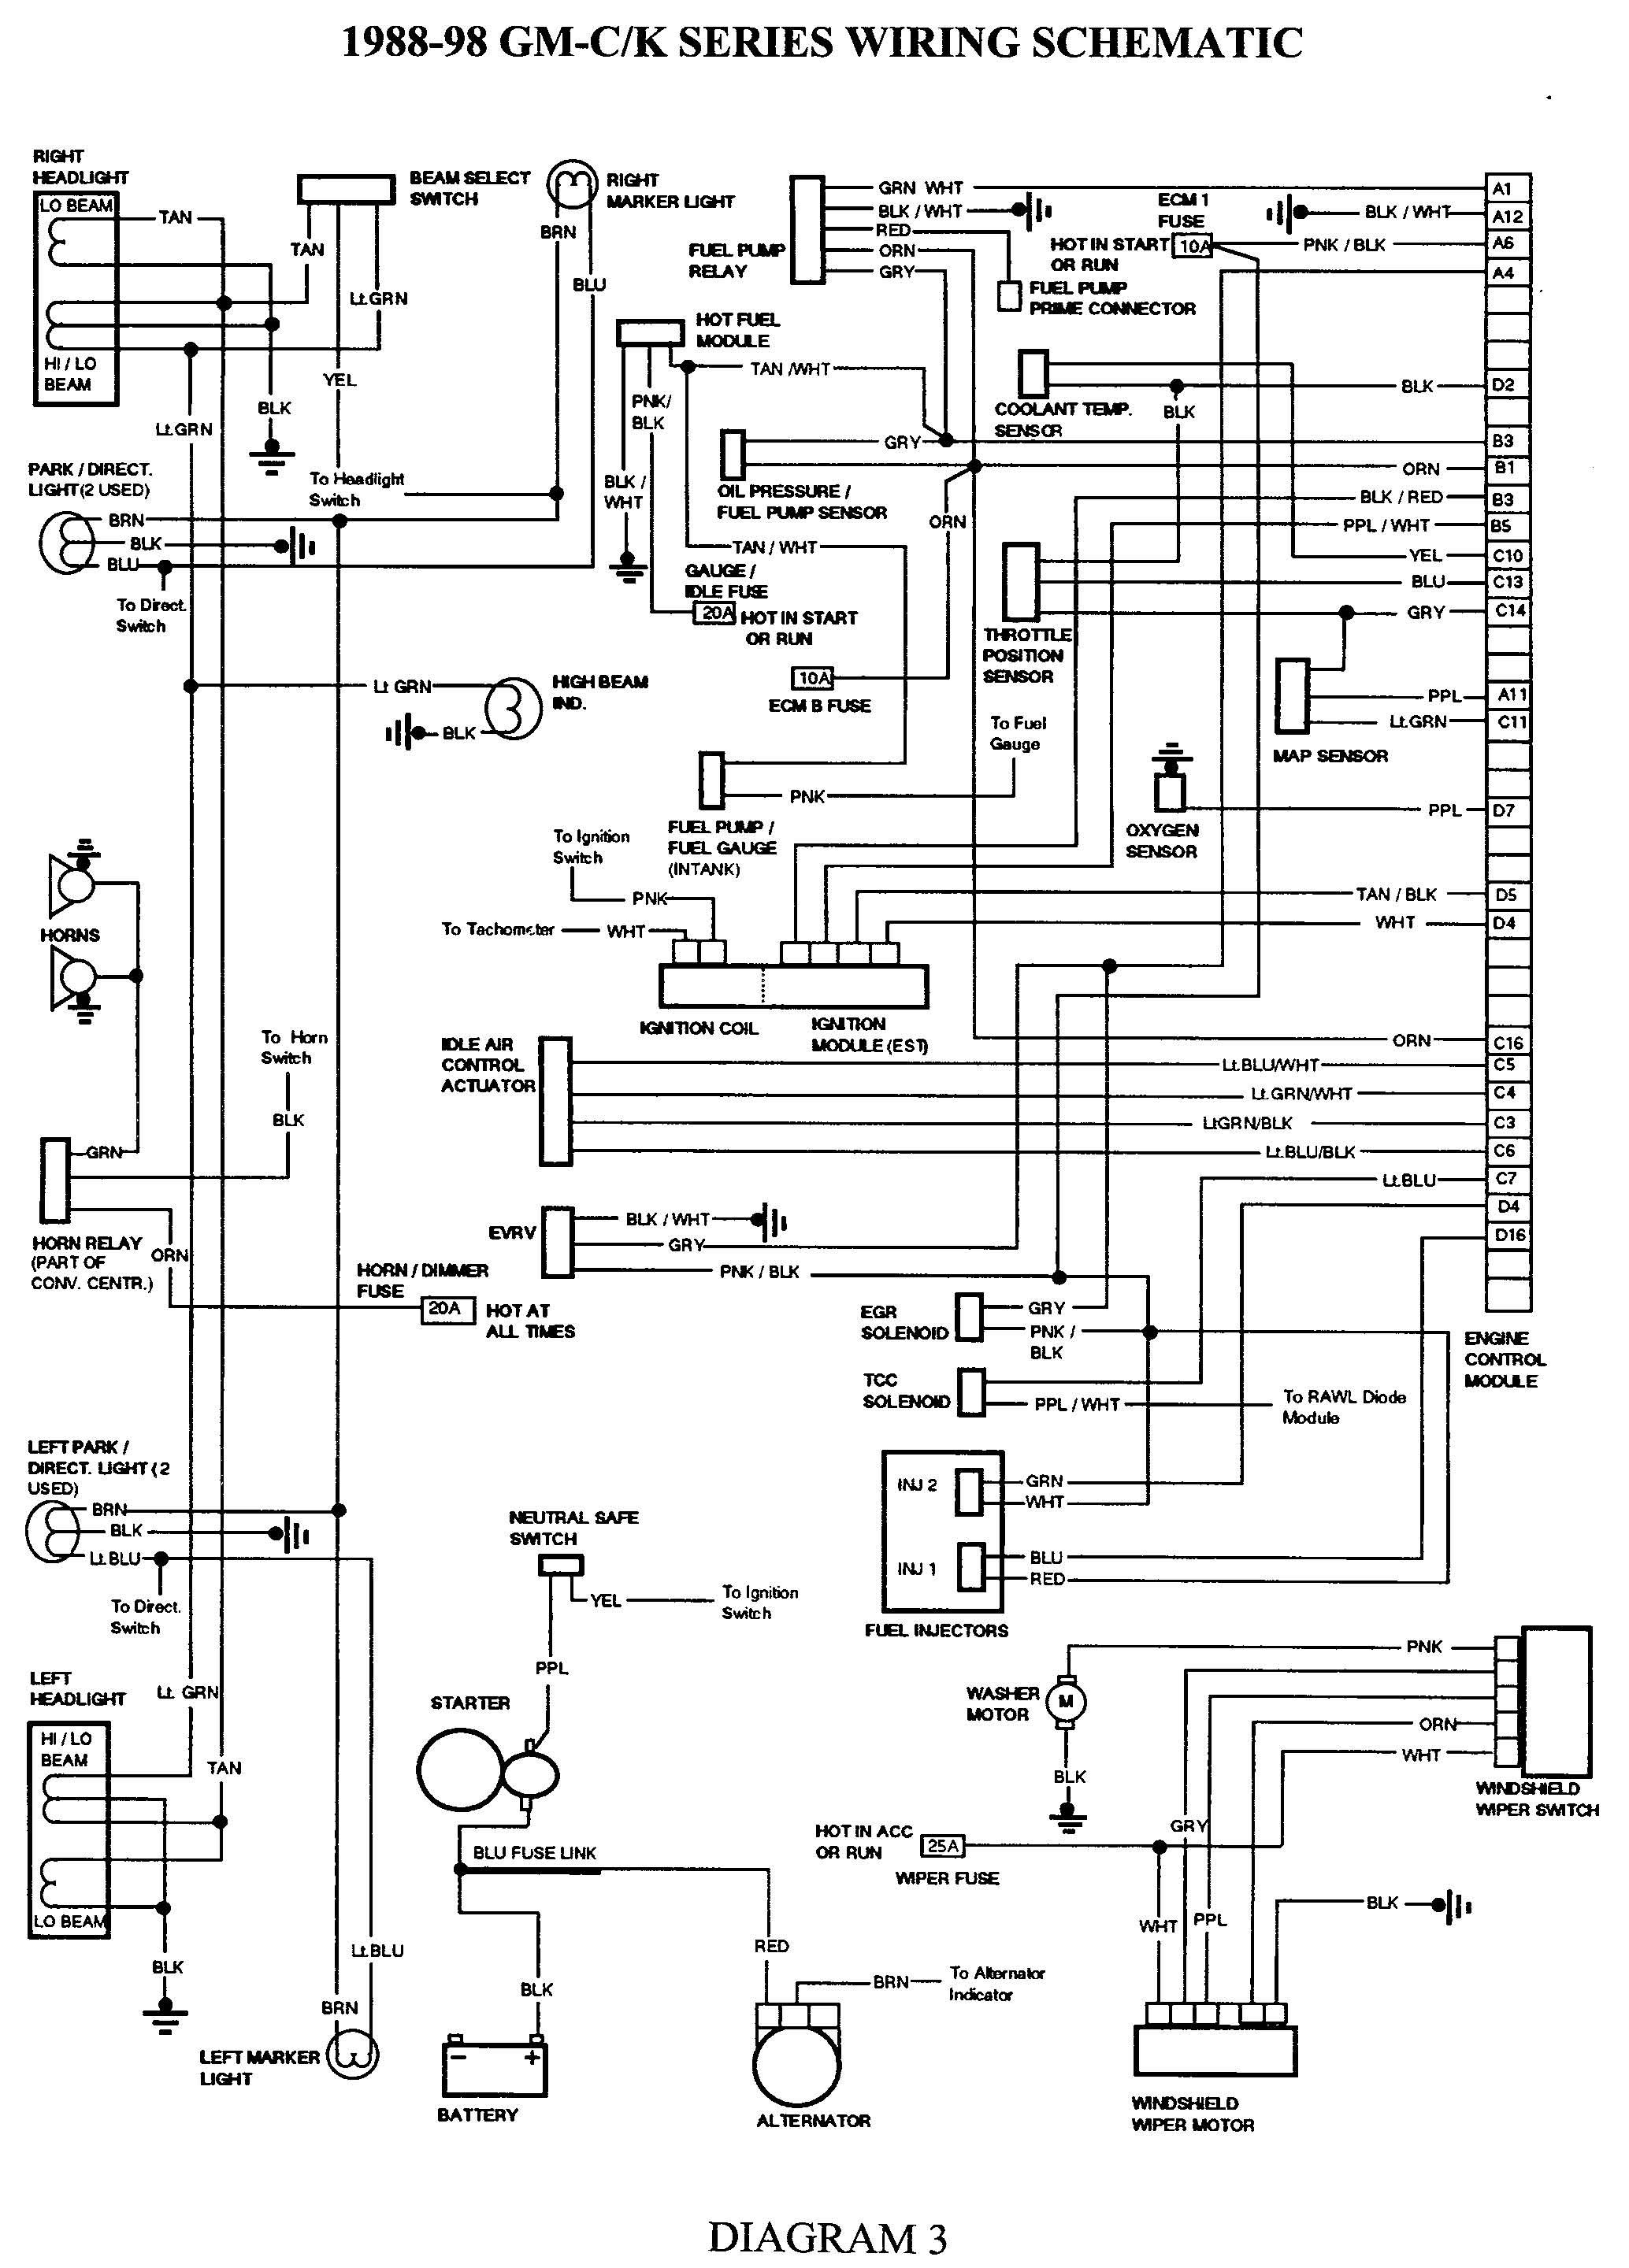 b2f2e5dbdc07dada83ef514f6d4ce3d4 gmc truck wiring diagrams on gm wiring harness diagram 88 98 kc truck wiring schematics at bayanpartner.co